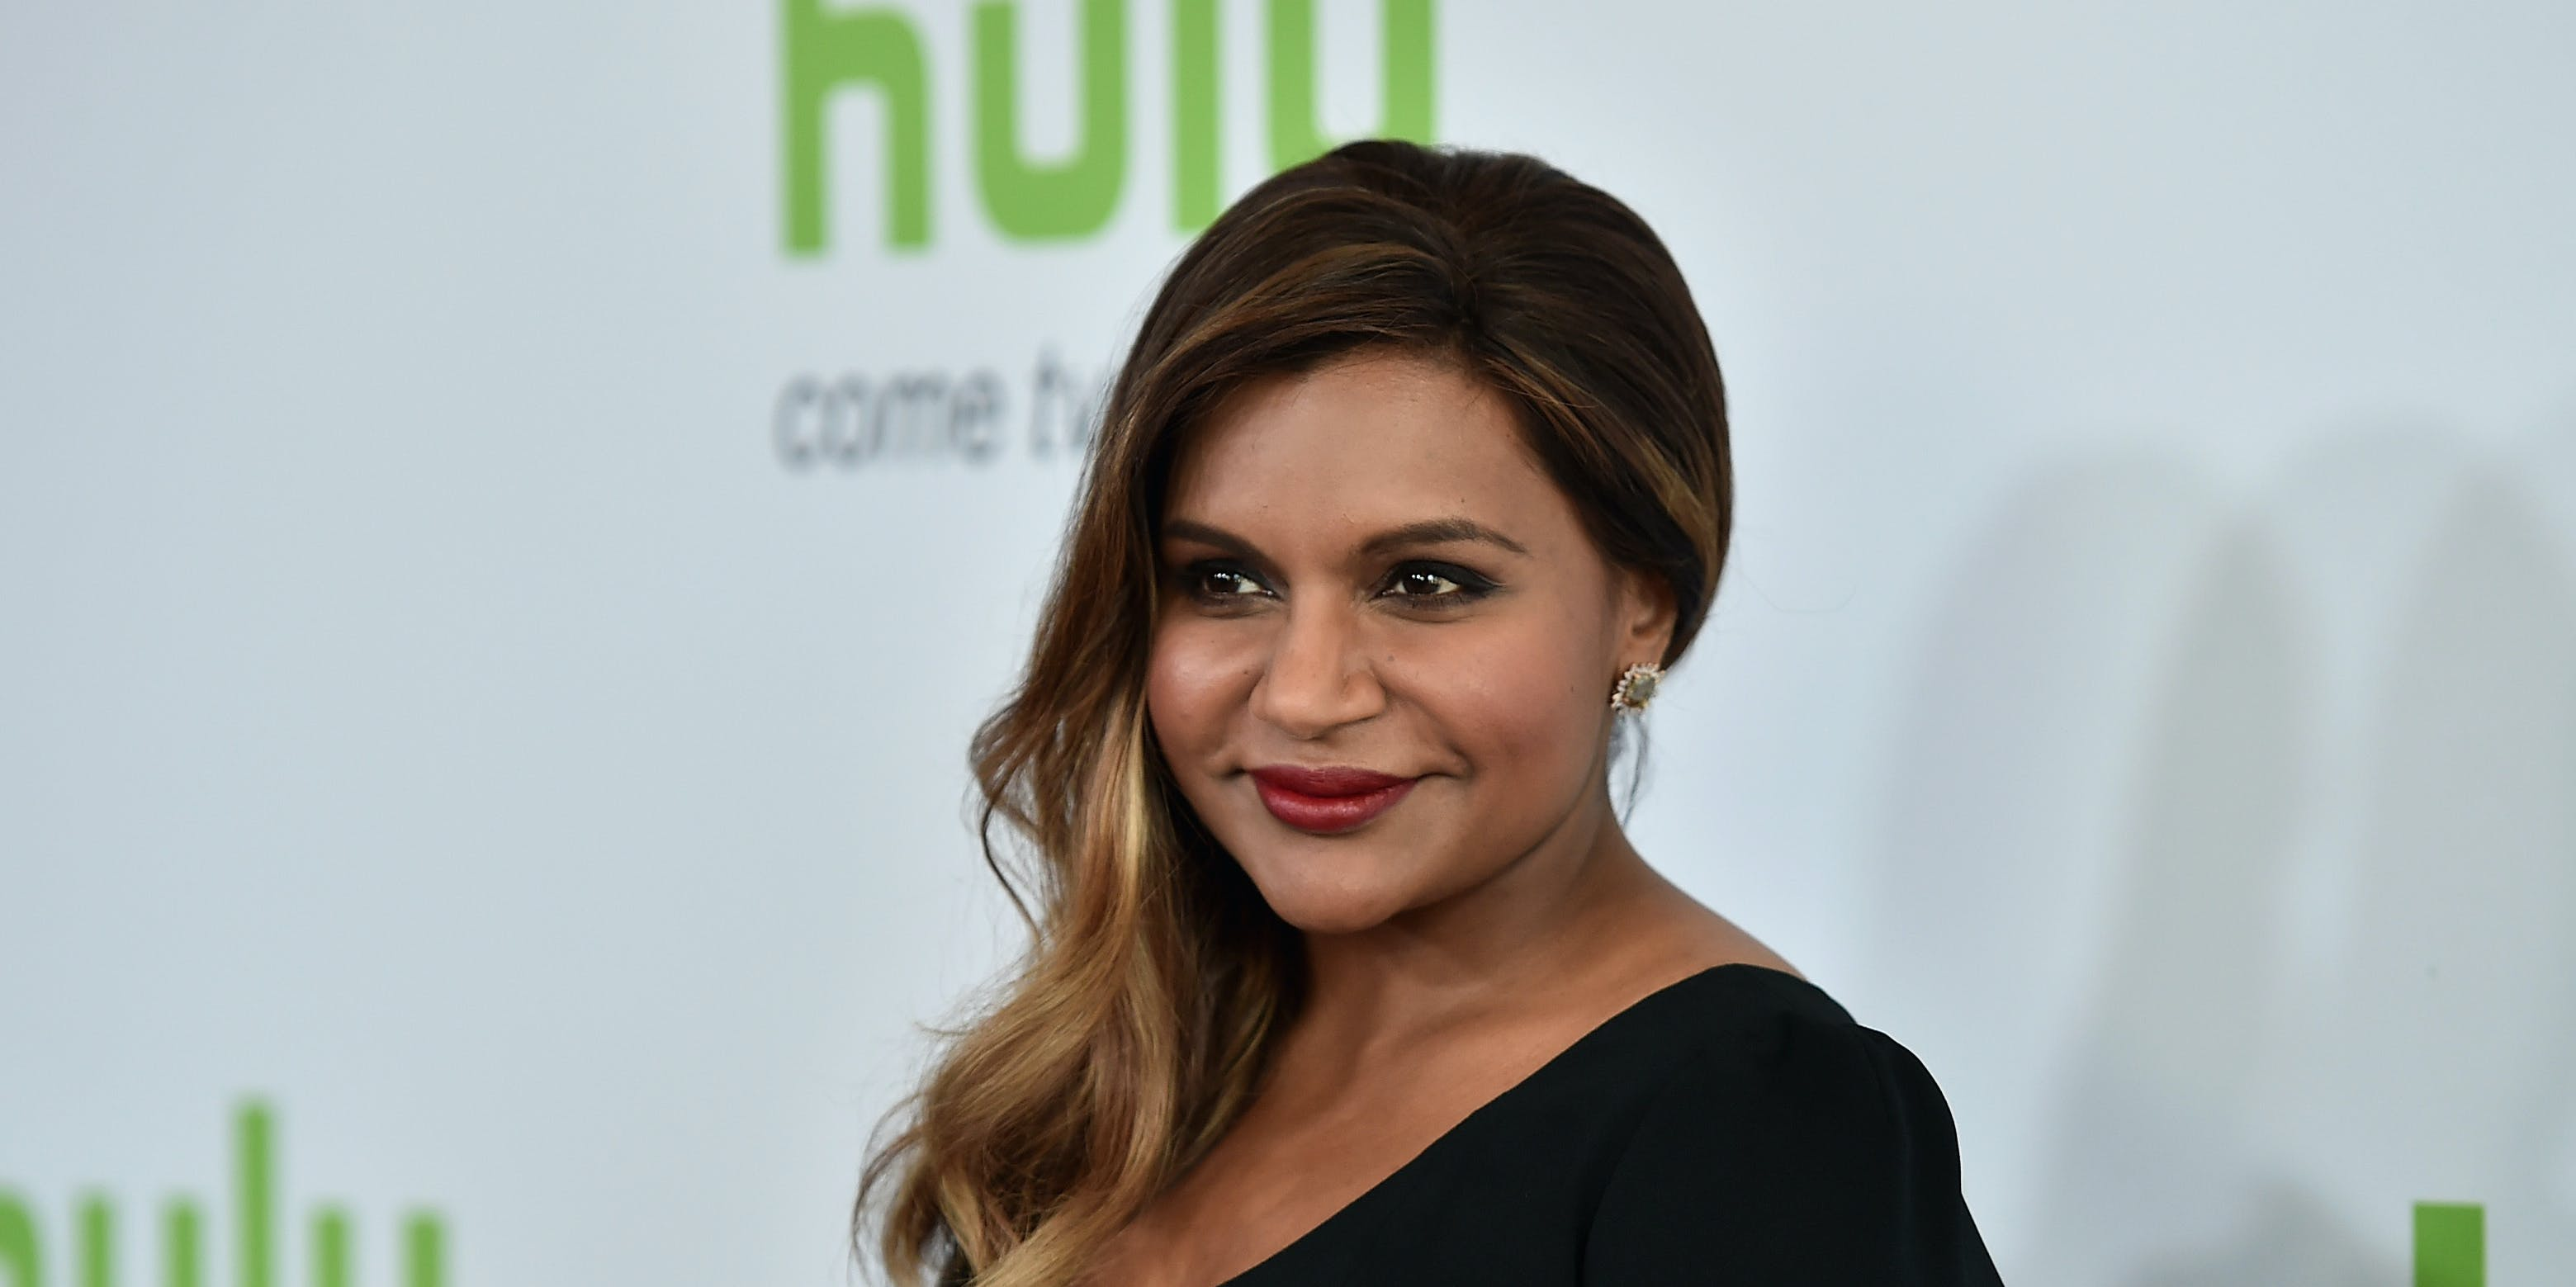 BEVERLY HILLS, CA - AUGUST 05:  Actress Mindy Kaling attends the Hulu TCA Summer 2016 at The Beverly Hilton Hotel on August 5, 2016 in Beverly Hills, California.  (Photo by Alberto E. Rodriguez/Getty Images)